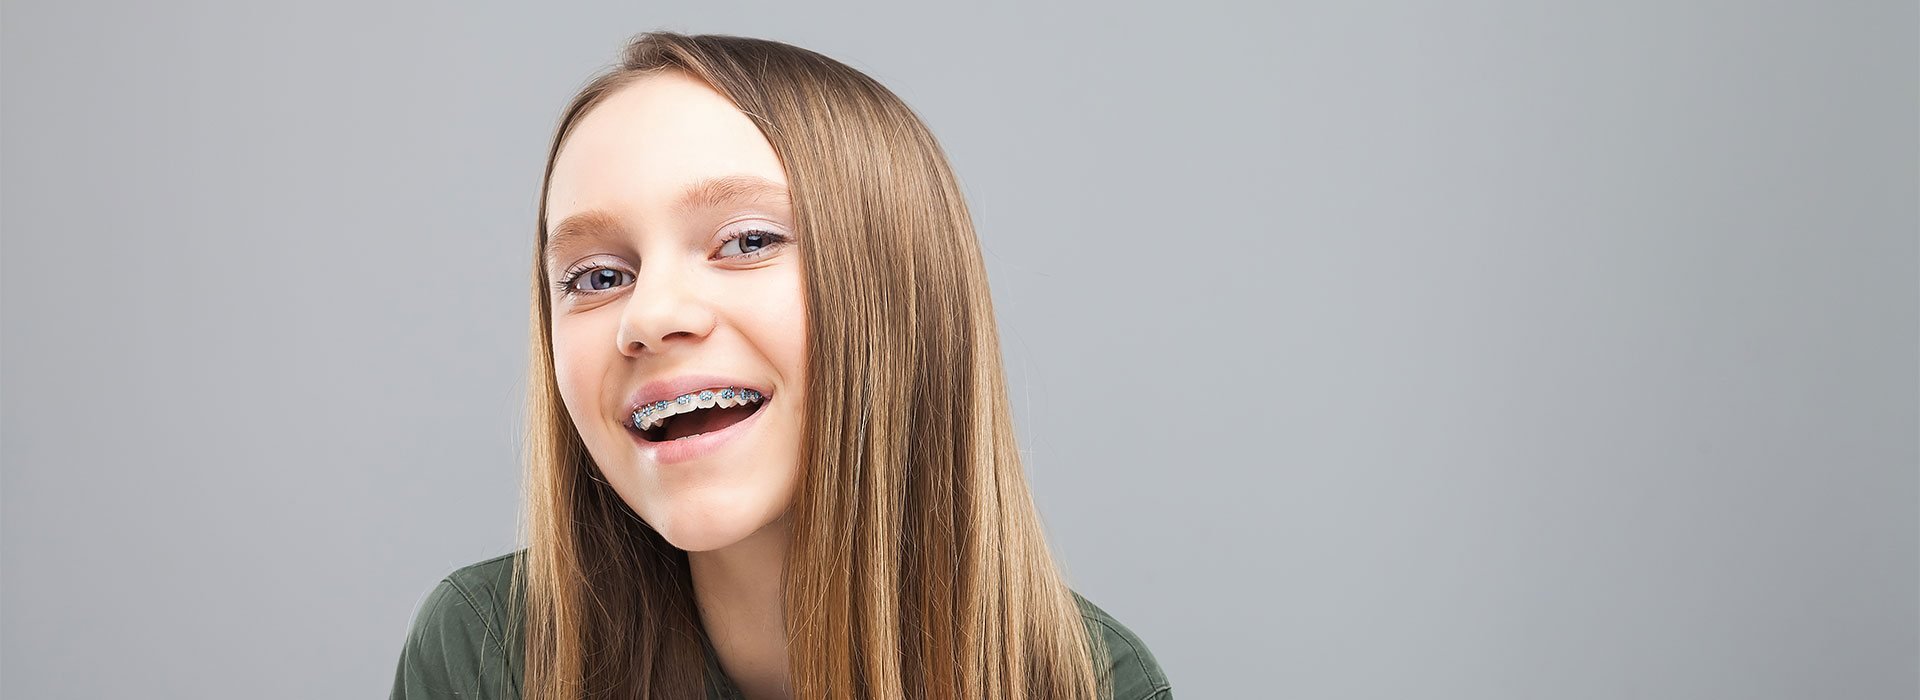 improve your smile with orthodontics